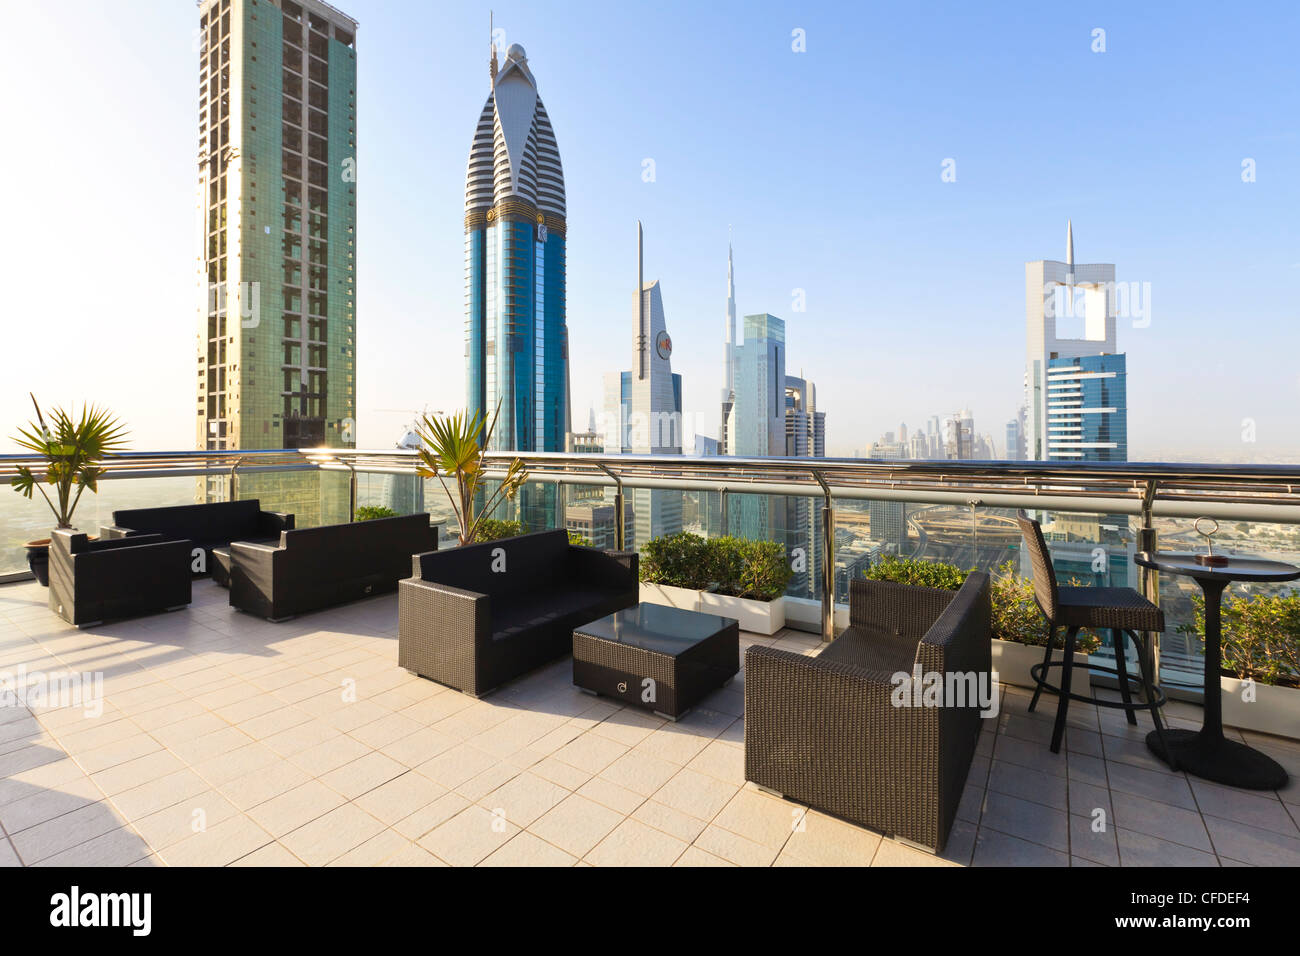 Cityscape seen from rooftop bar, Sheikh Zayed Road, Dubai, United Arab Emirates, Middle East - Stock Image